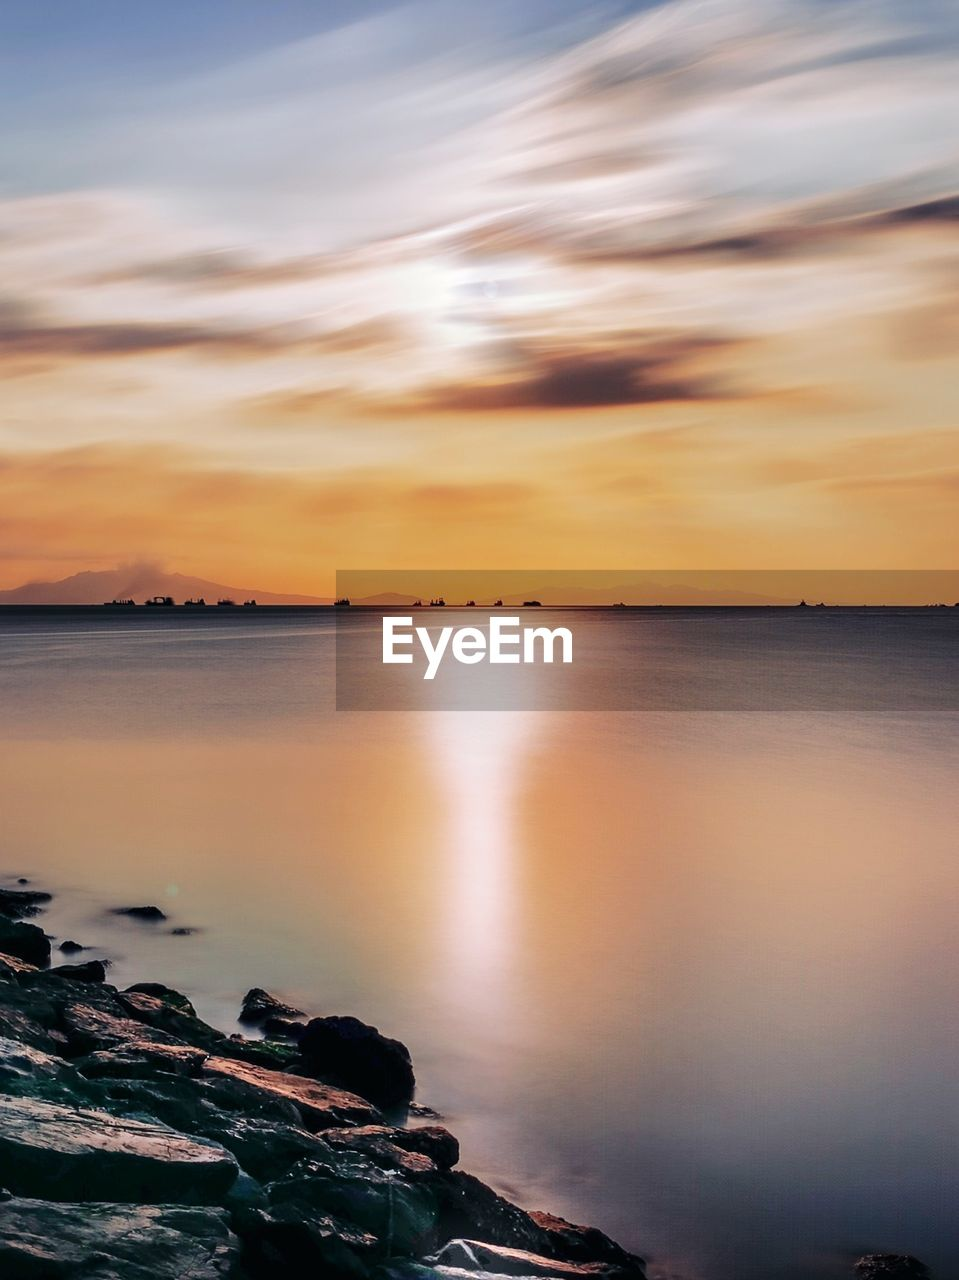 water, sky, beauty in nature, scenics - nature, cloud - sky, tranquility, sunset, sea, tranquil scene, nature, idyllic, no people, reflection, beach, rock, orange color, land, horizon, horizon over water, outdoors